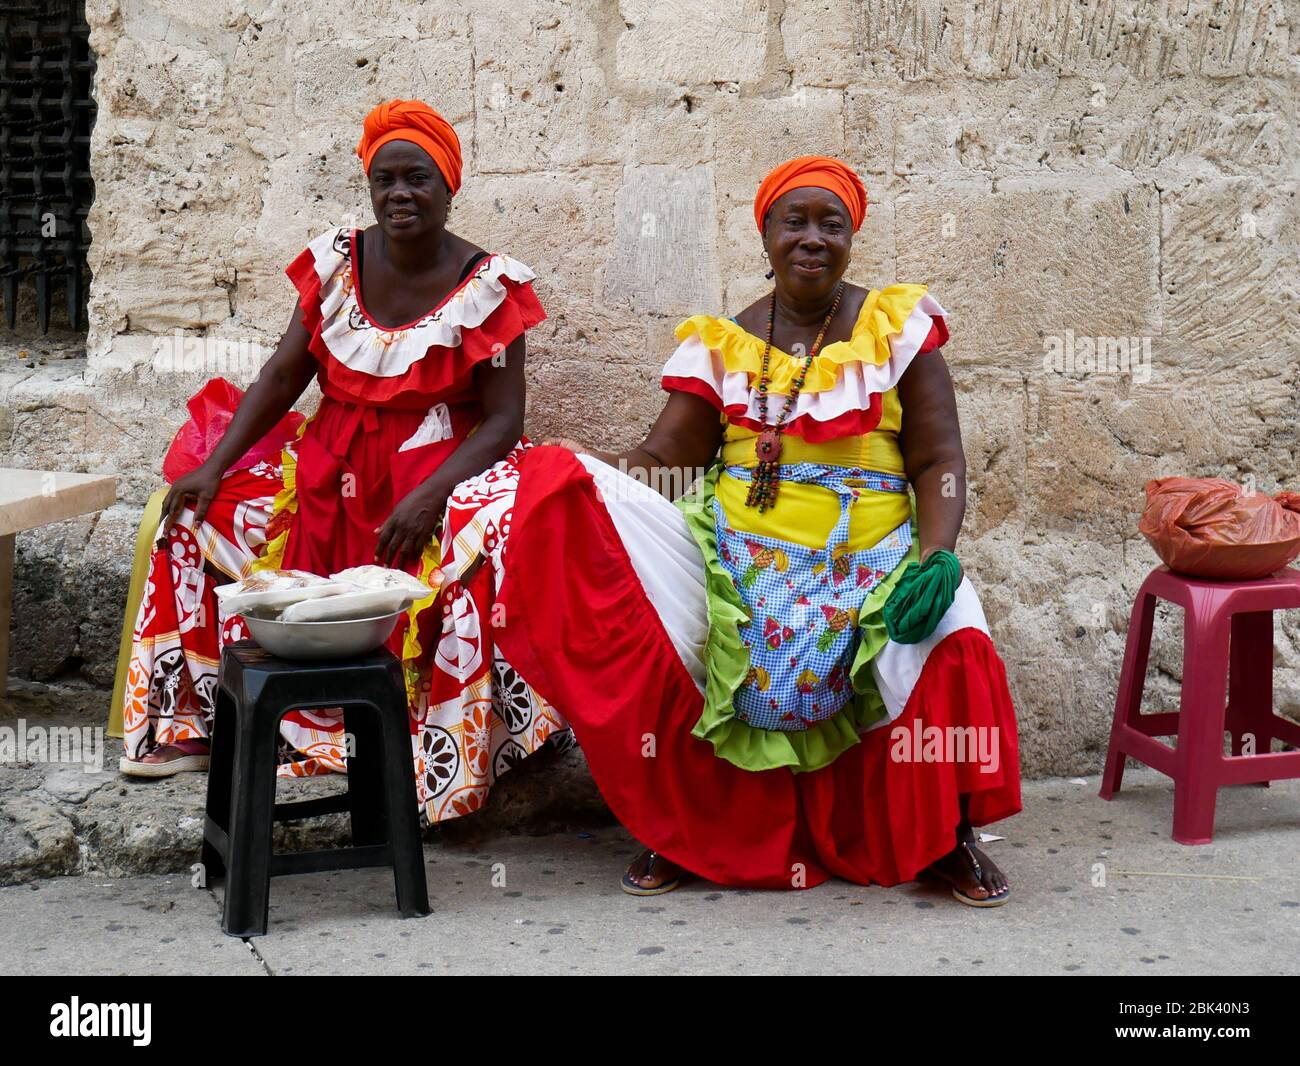 Cartagena, Colombia, August 1 2019: two tipical fruit street sellers palenqueras with colorful dresses seated resting from the front Stock Photo